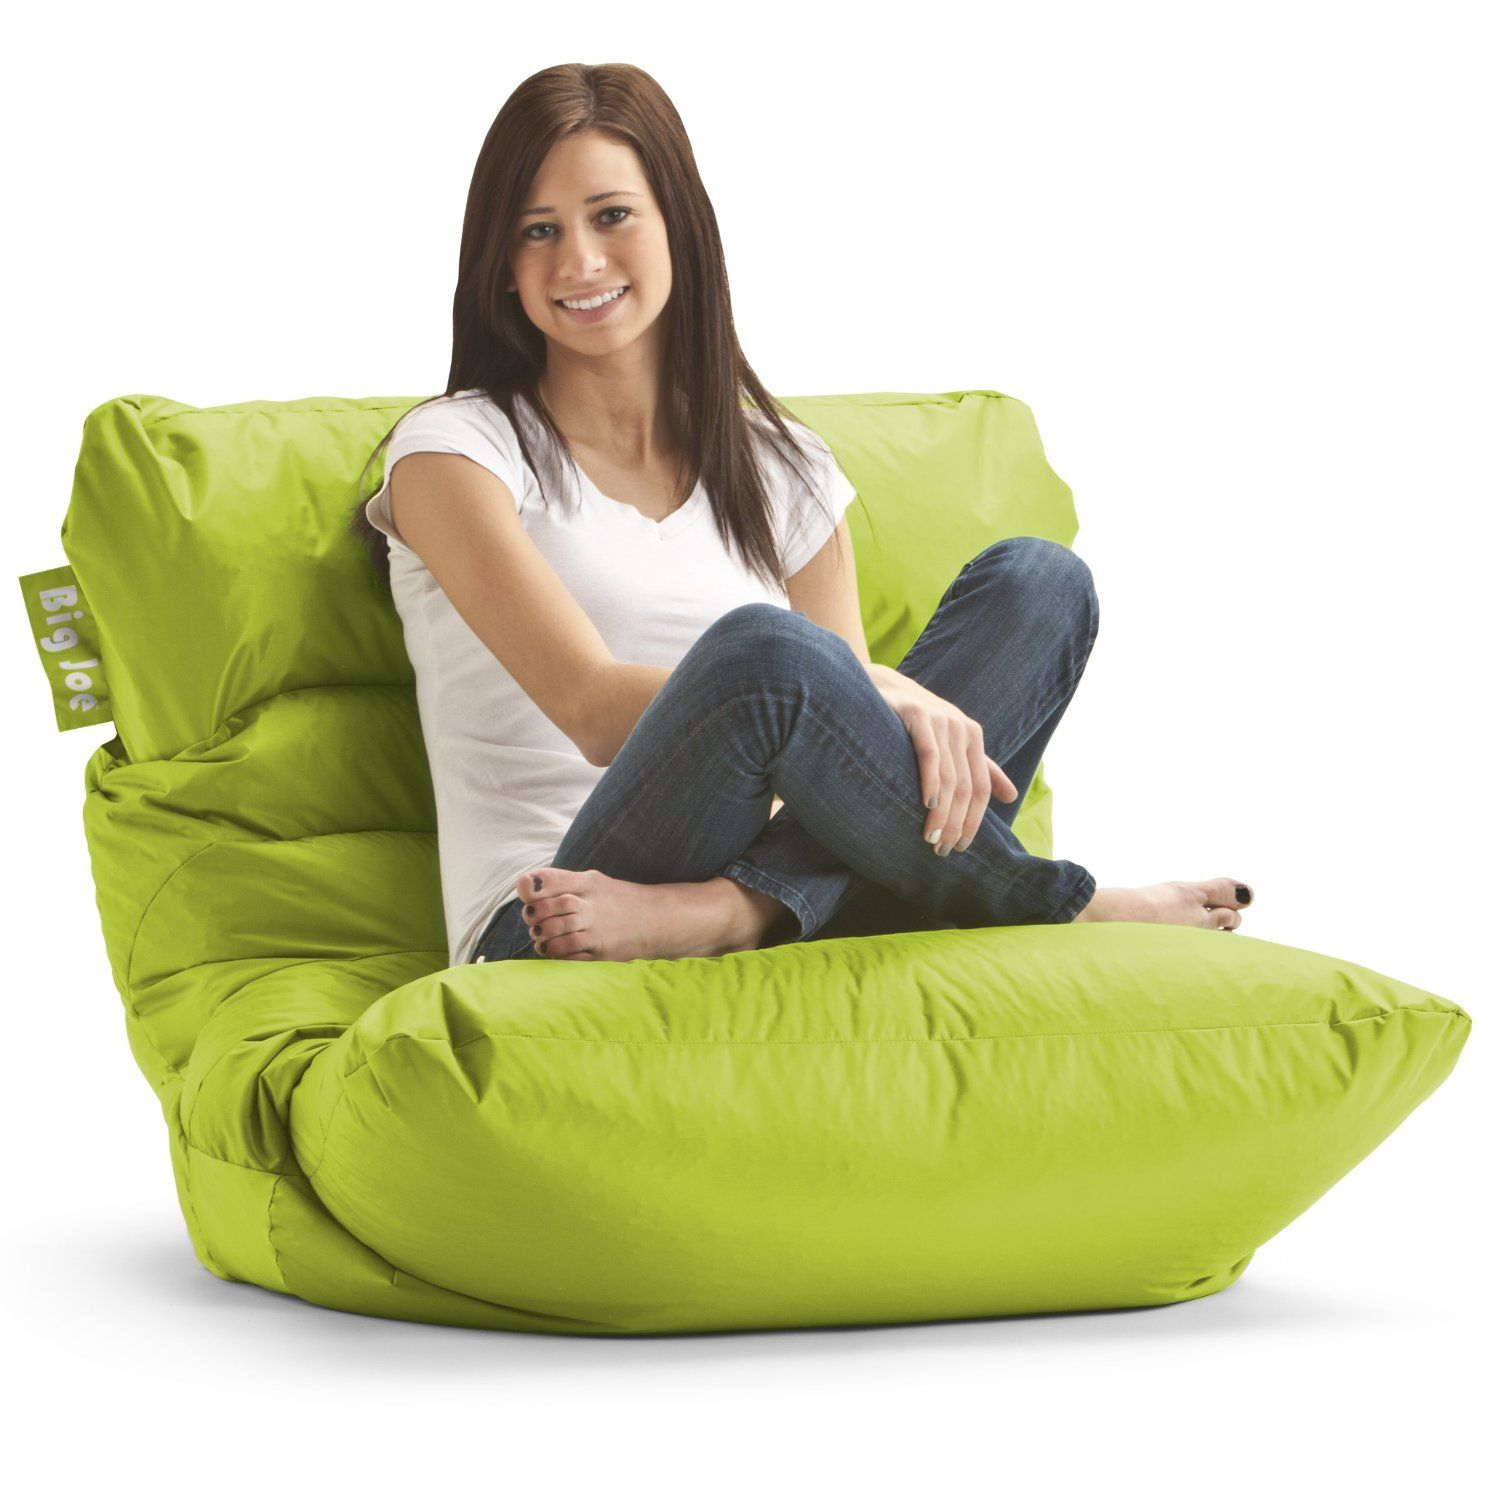 Amazoncom Big Joe Roma Bean Bag Chair Spicy Lime Beanbag